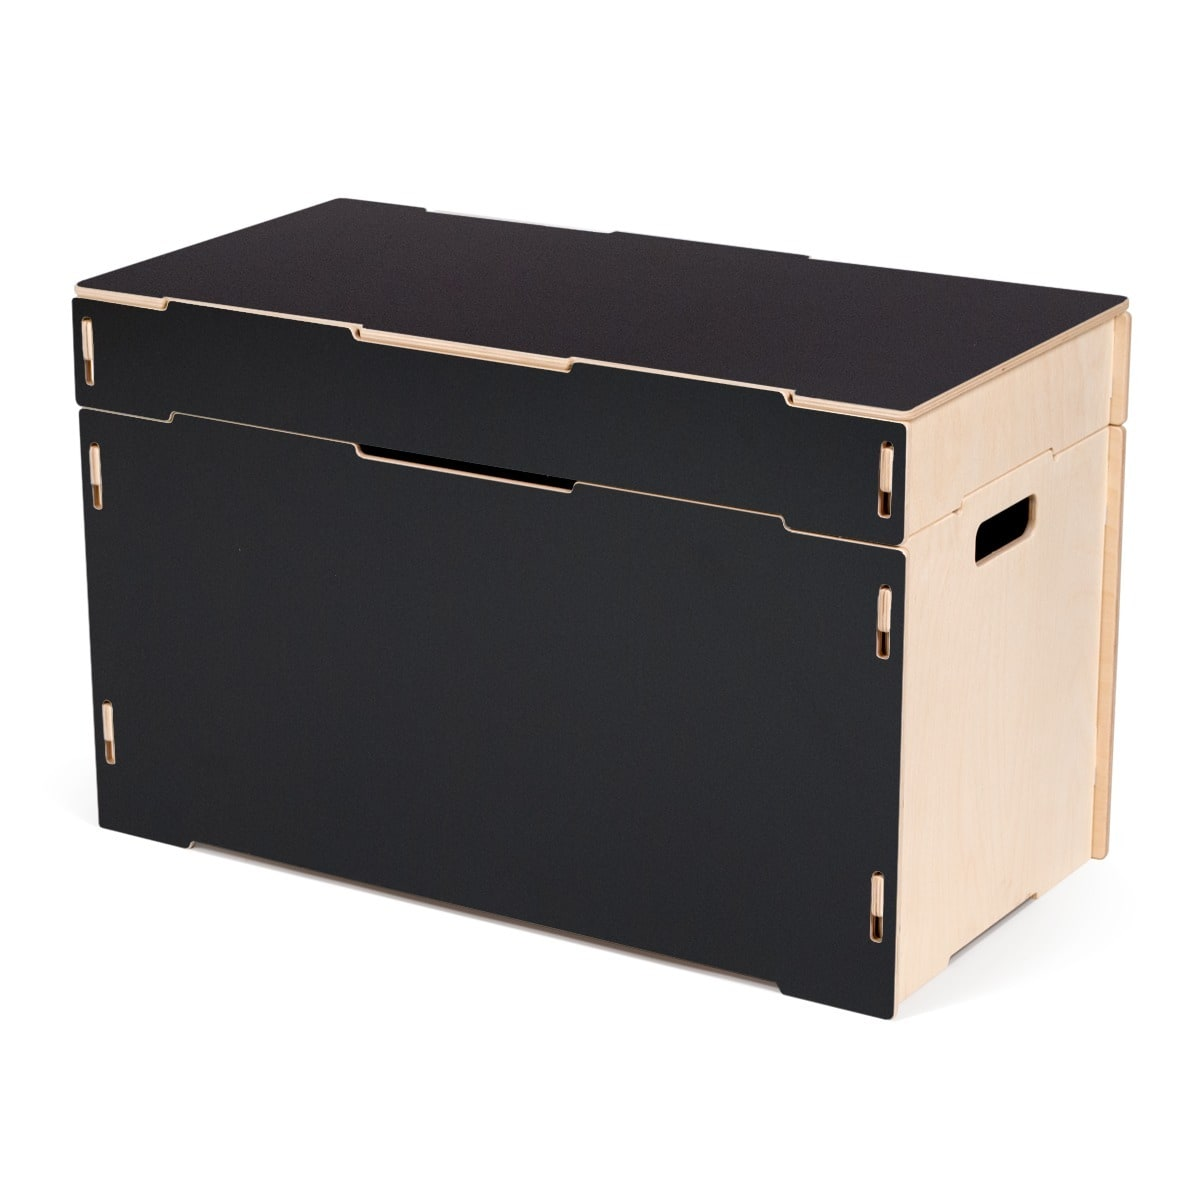 Sprout Small Wooden Storage Bench Black Walmart Com